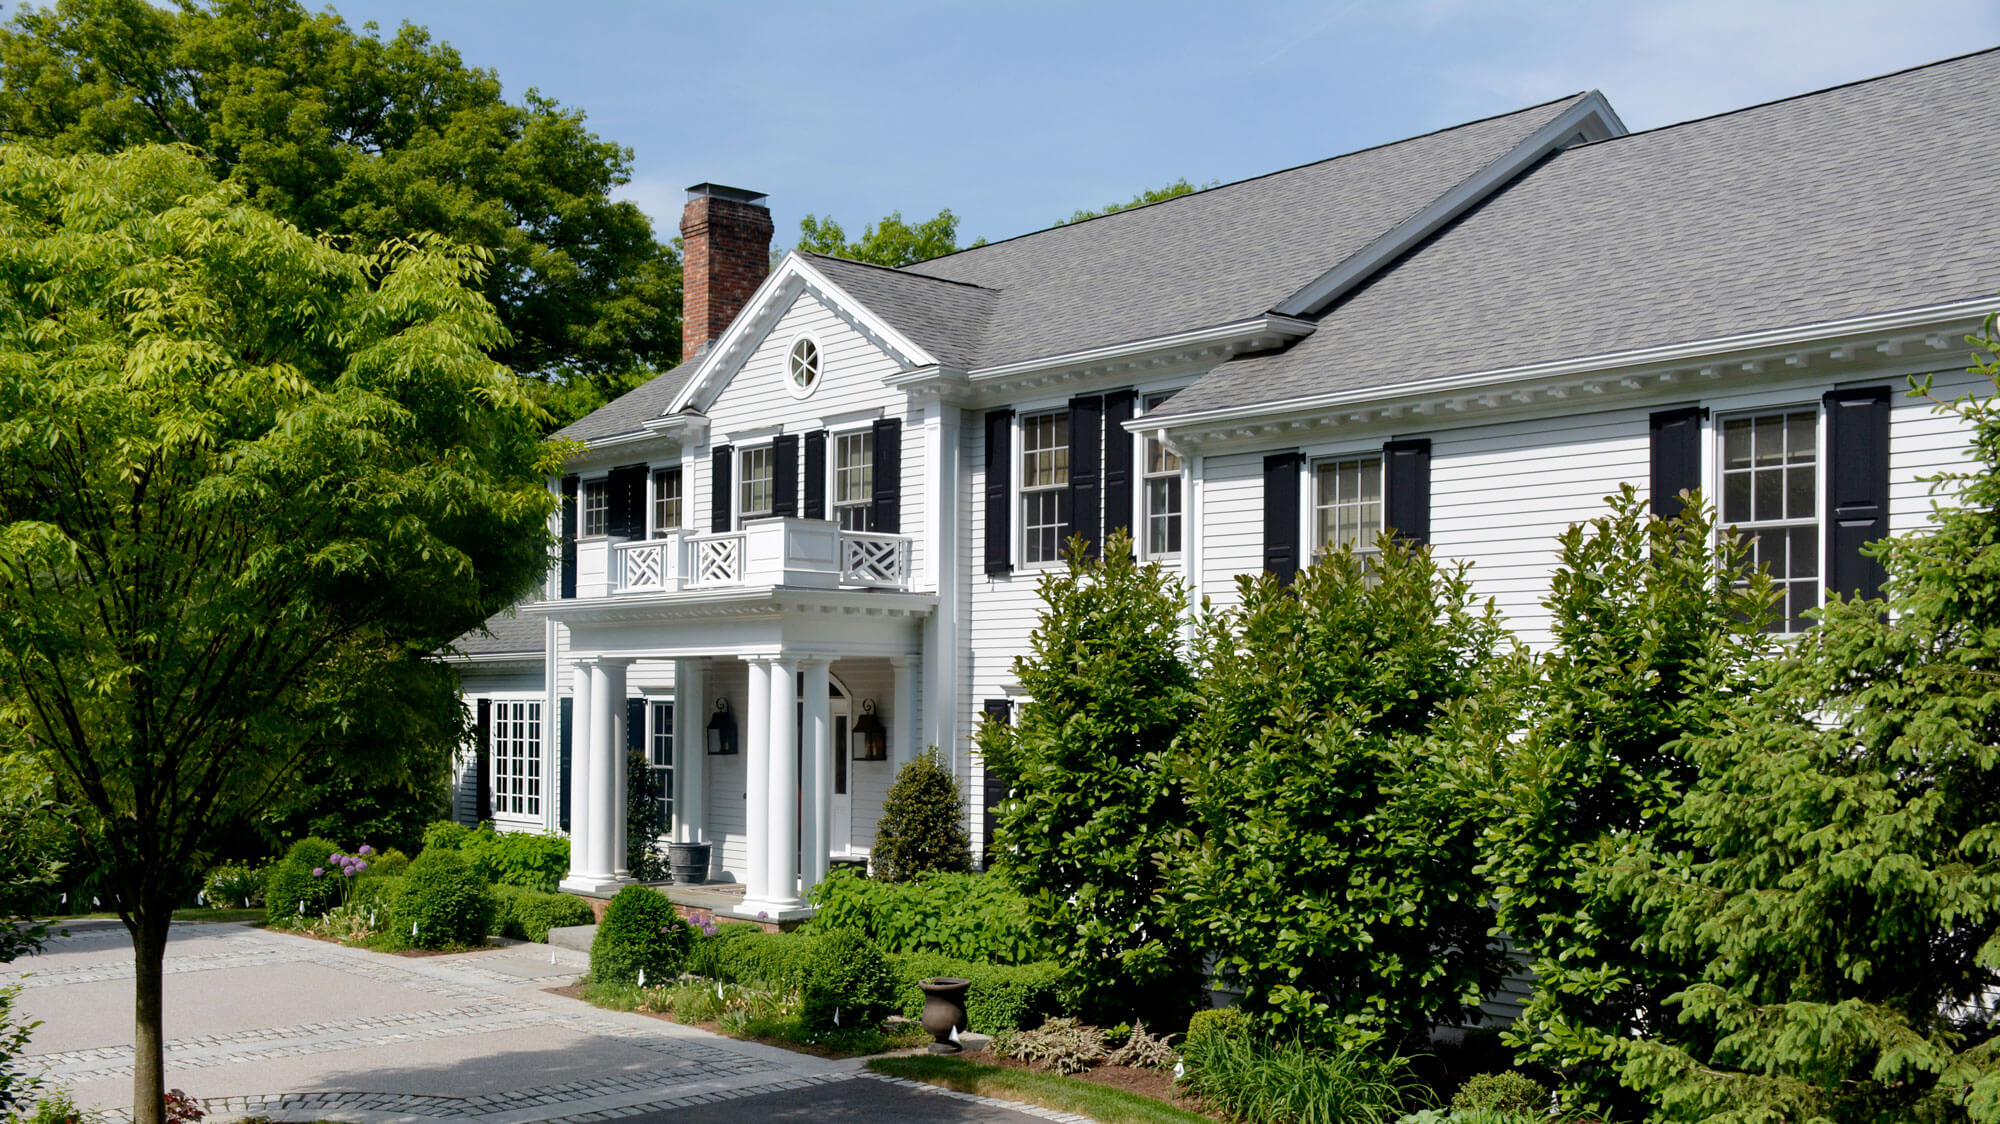 Colonial Revival House architect